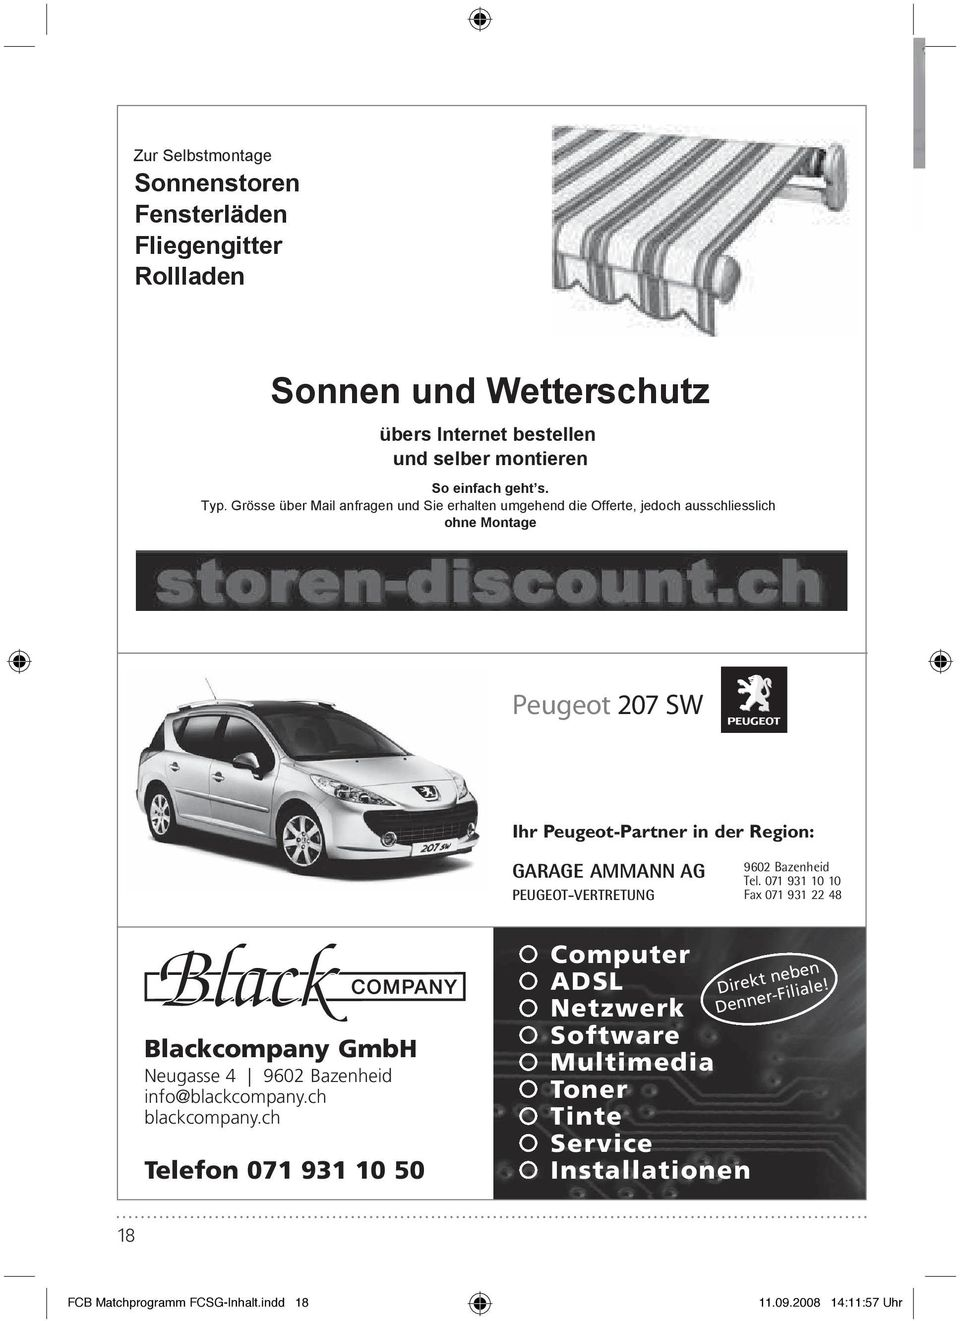 PEUGEOT-VERTRETUNG 9602 Bazenheid Tel. 071 931 10 10 Fax 071 931 22 48 Blackcompany GmbH Neugasse 4 9602 Bazenheid info@blackcompany.ch blackcompany.